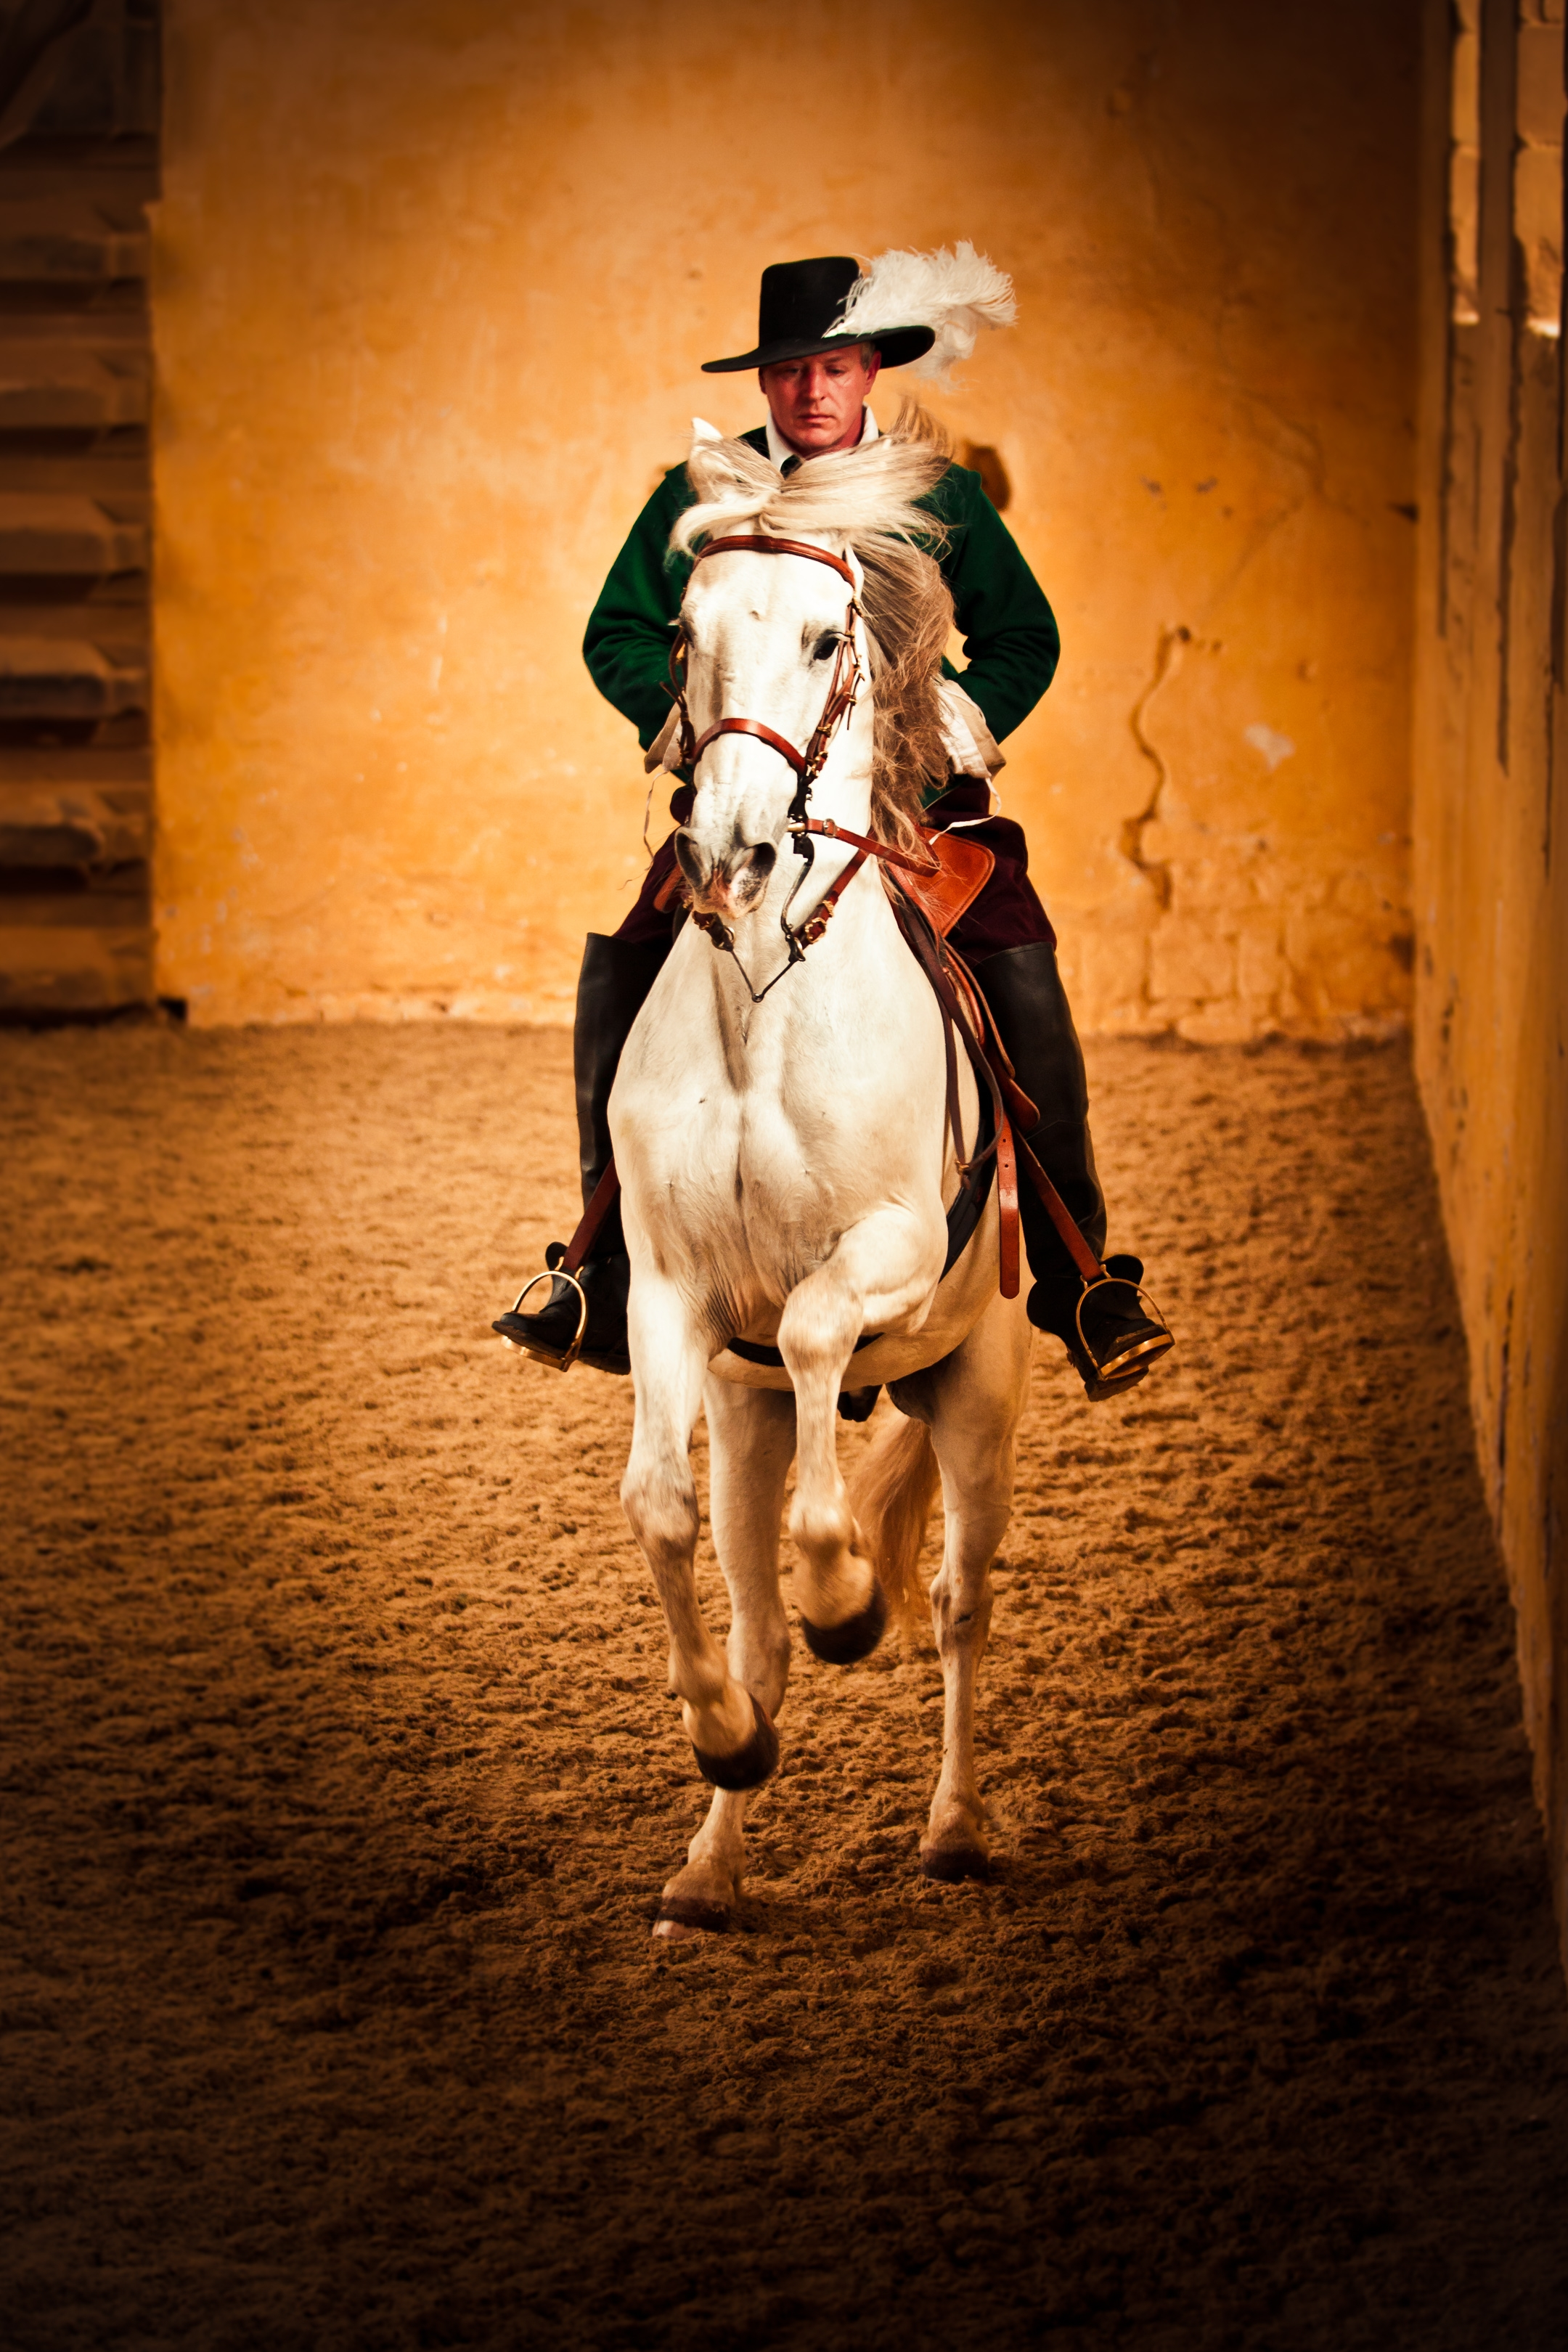 Bolsover - Enjoy an exclusive evening of dressage in the stunning surroundings of Bolsover Castle